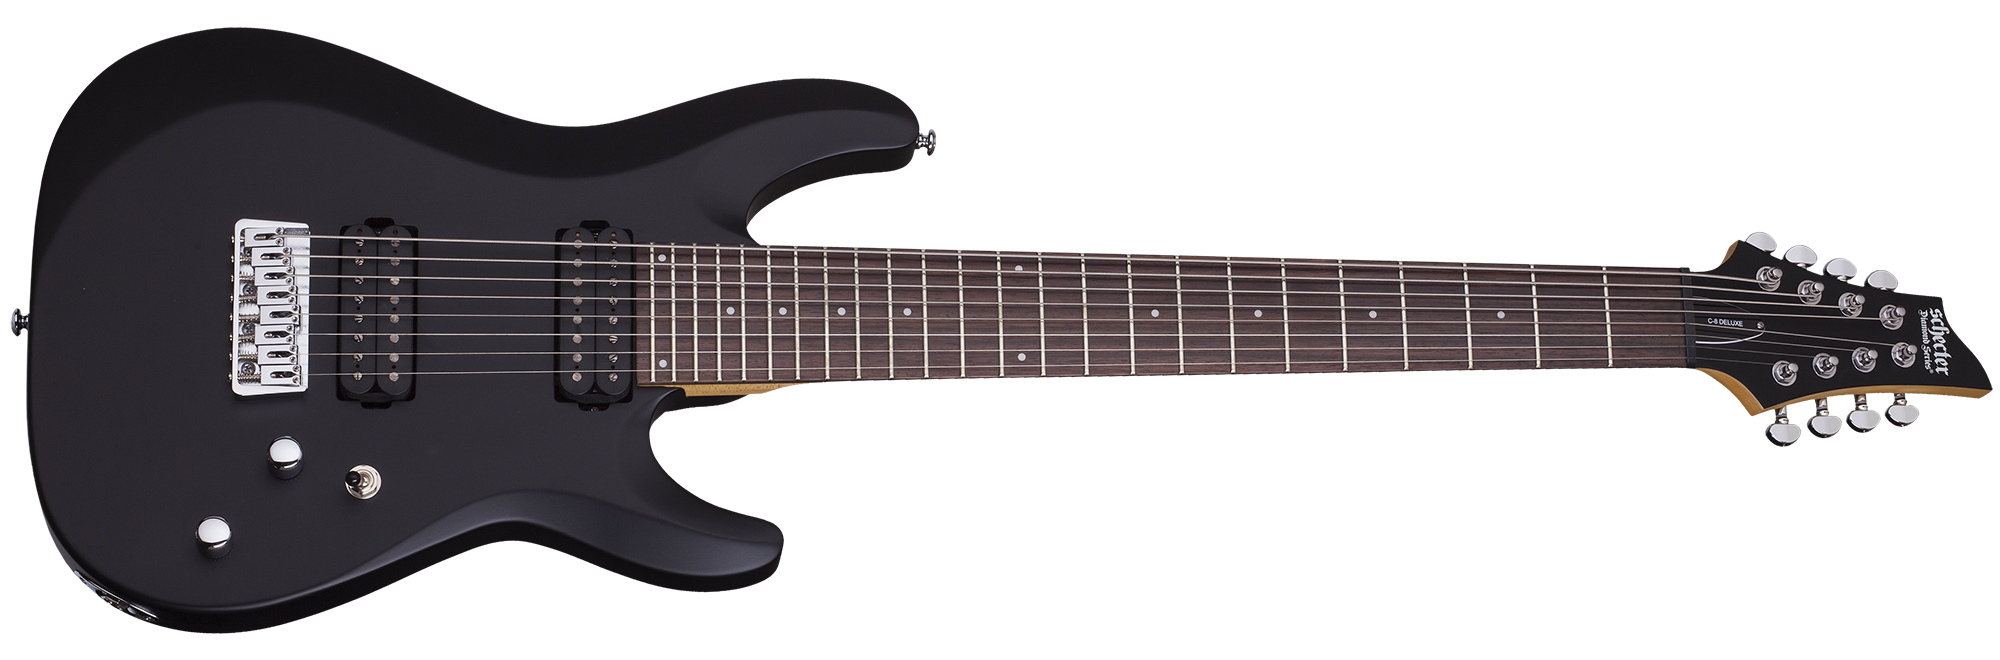 C-8 Deluxe Satin Black (SBK) SKU #440